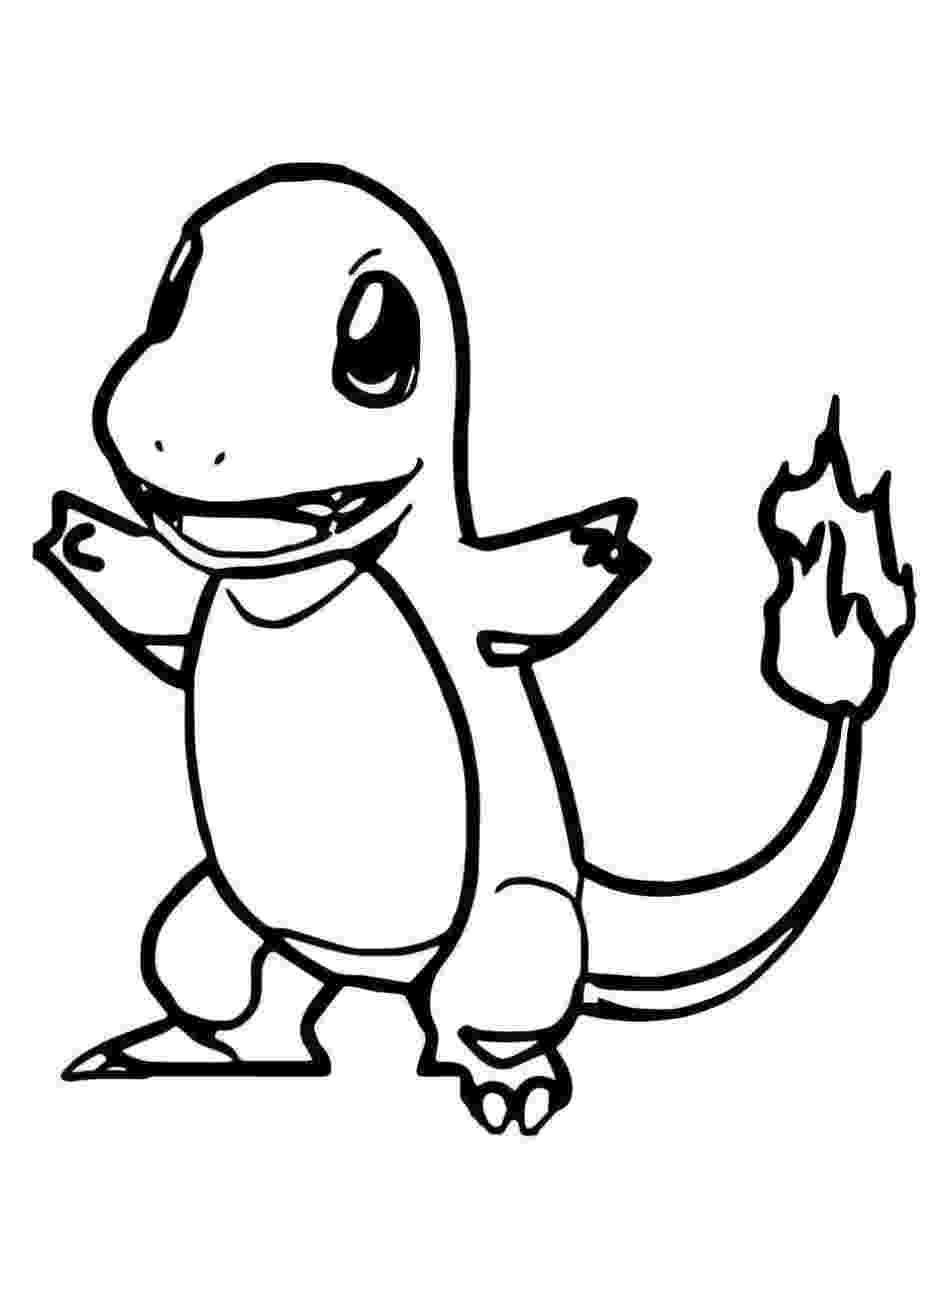 charmander coloring page charmander coloring pages to download and print for free page charmander coloring